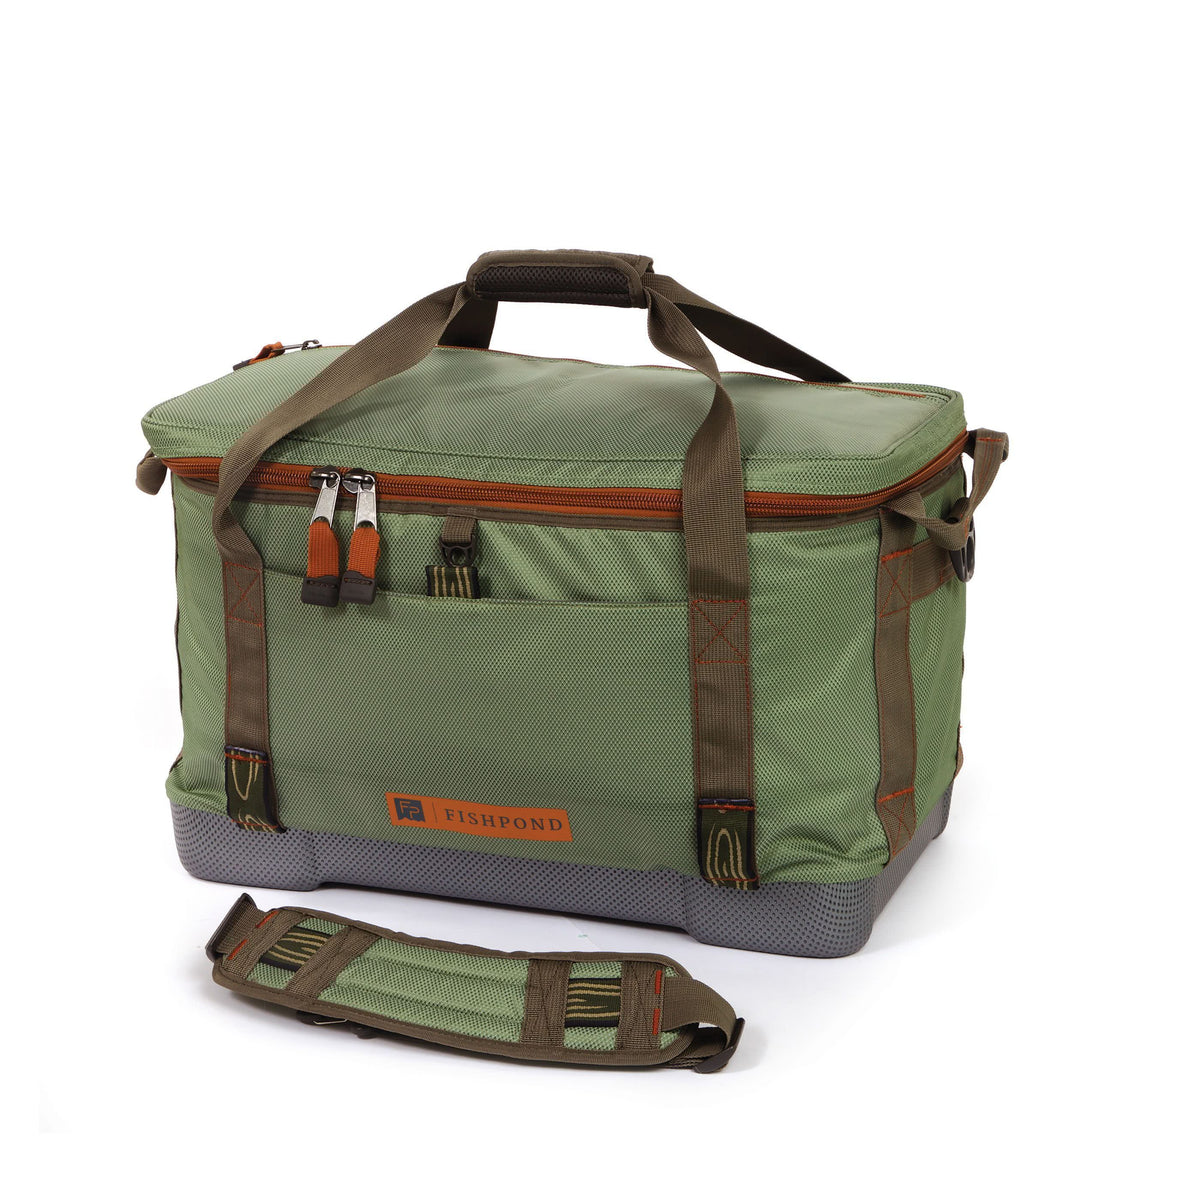 Fishpond Ice Storm Soft Cooler